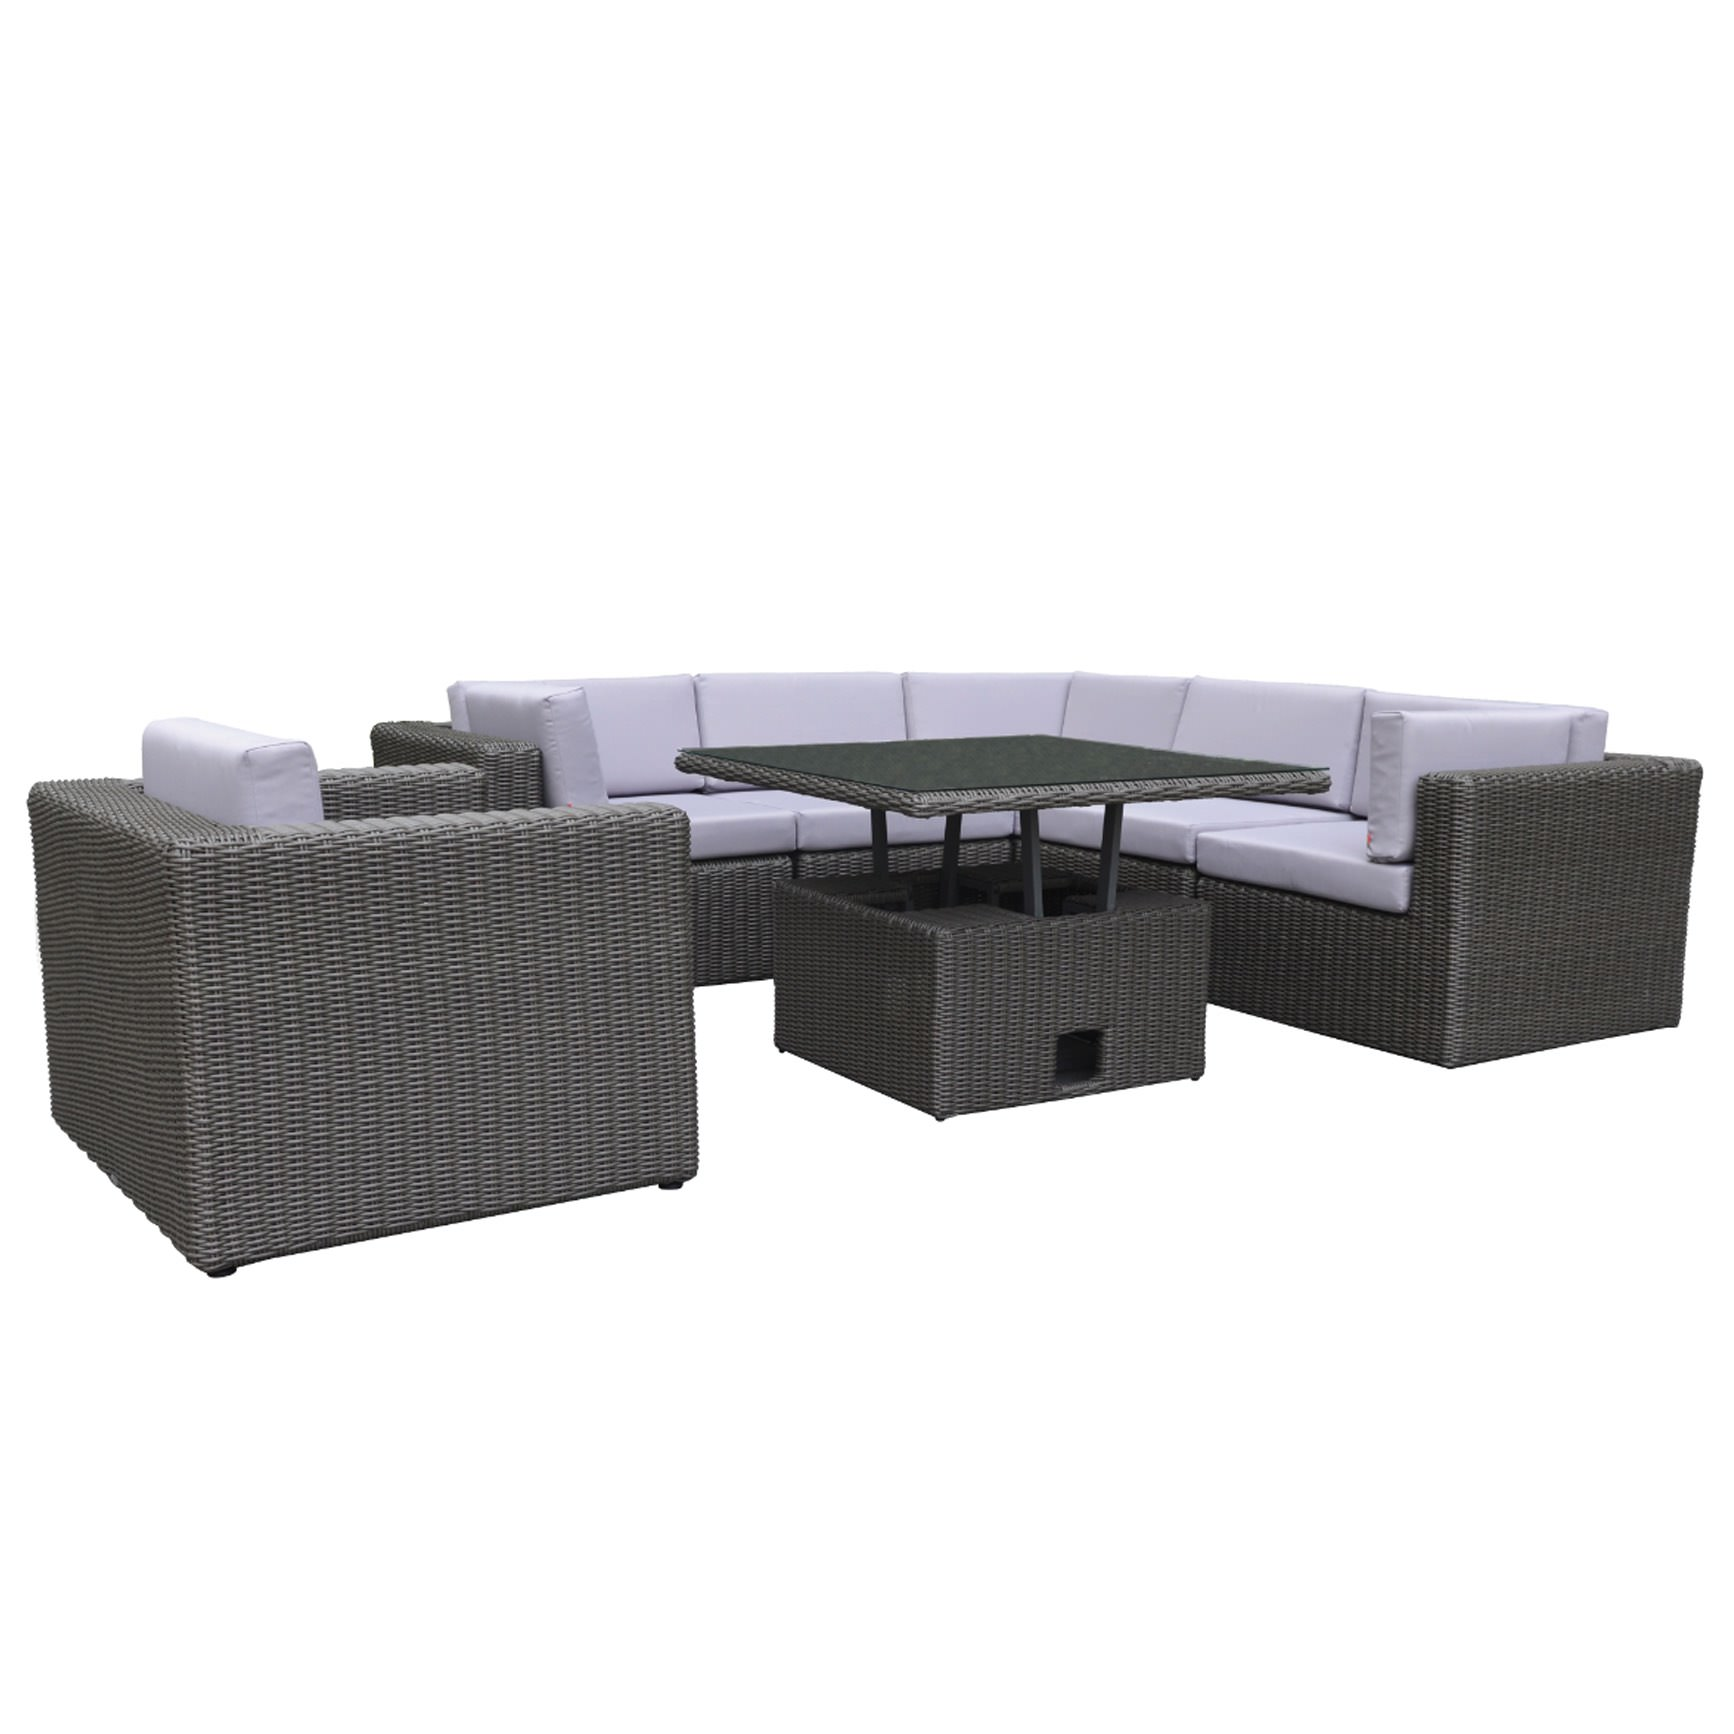 polyrattan loungem bel in grau braun und dunkelgrau sofort lieferbar. Black Bedroom Furniture Sets. Home Design Ideas